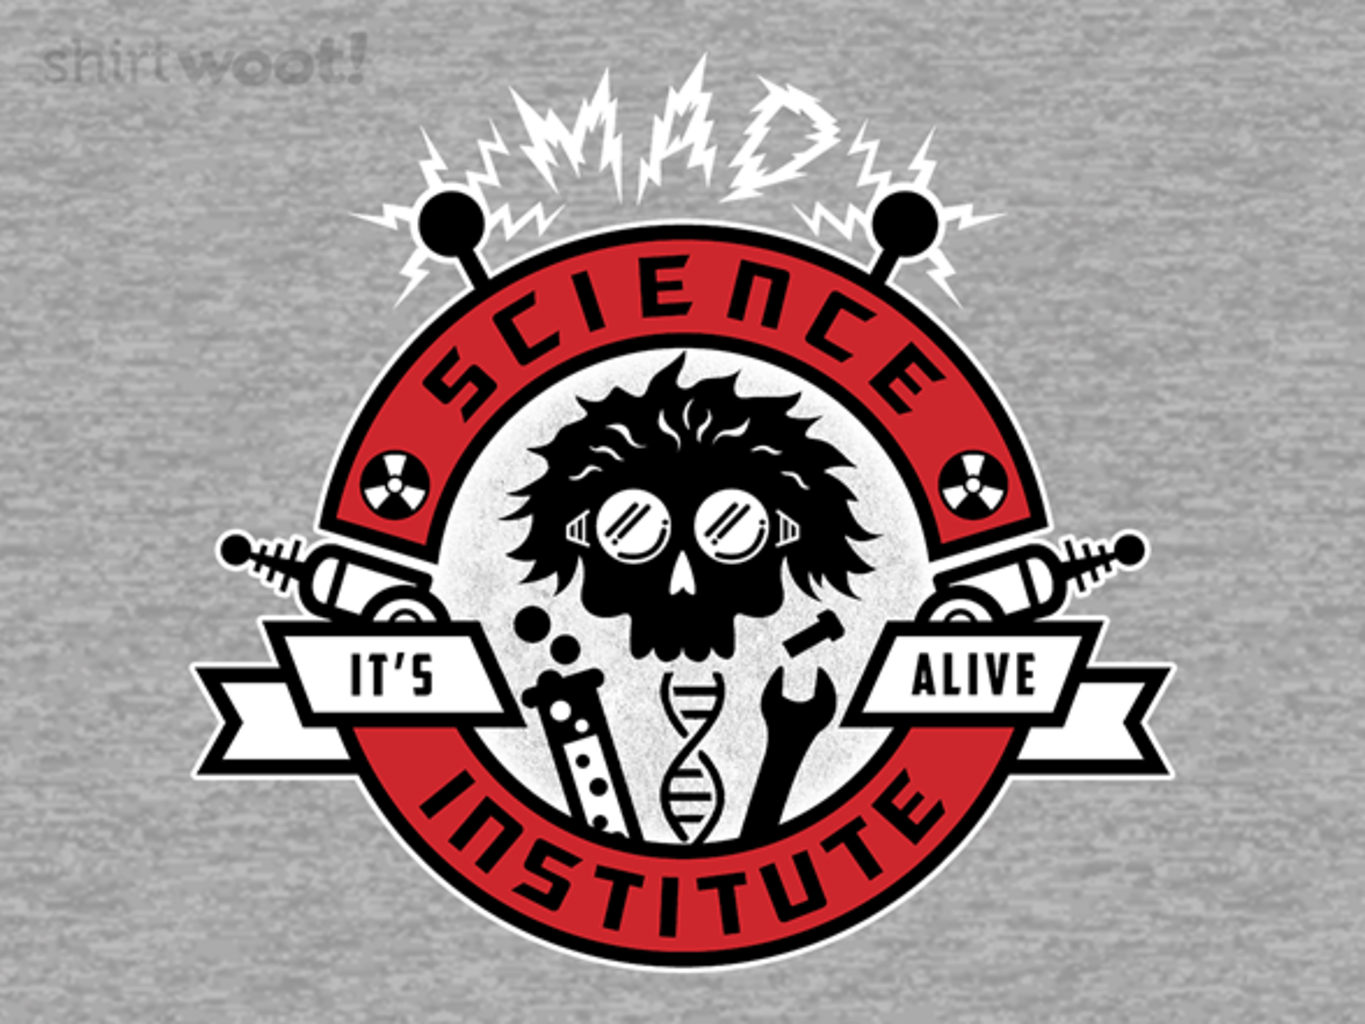 Woot!: Mad Science Institute